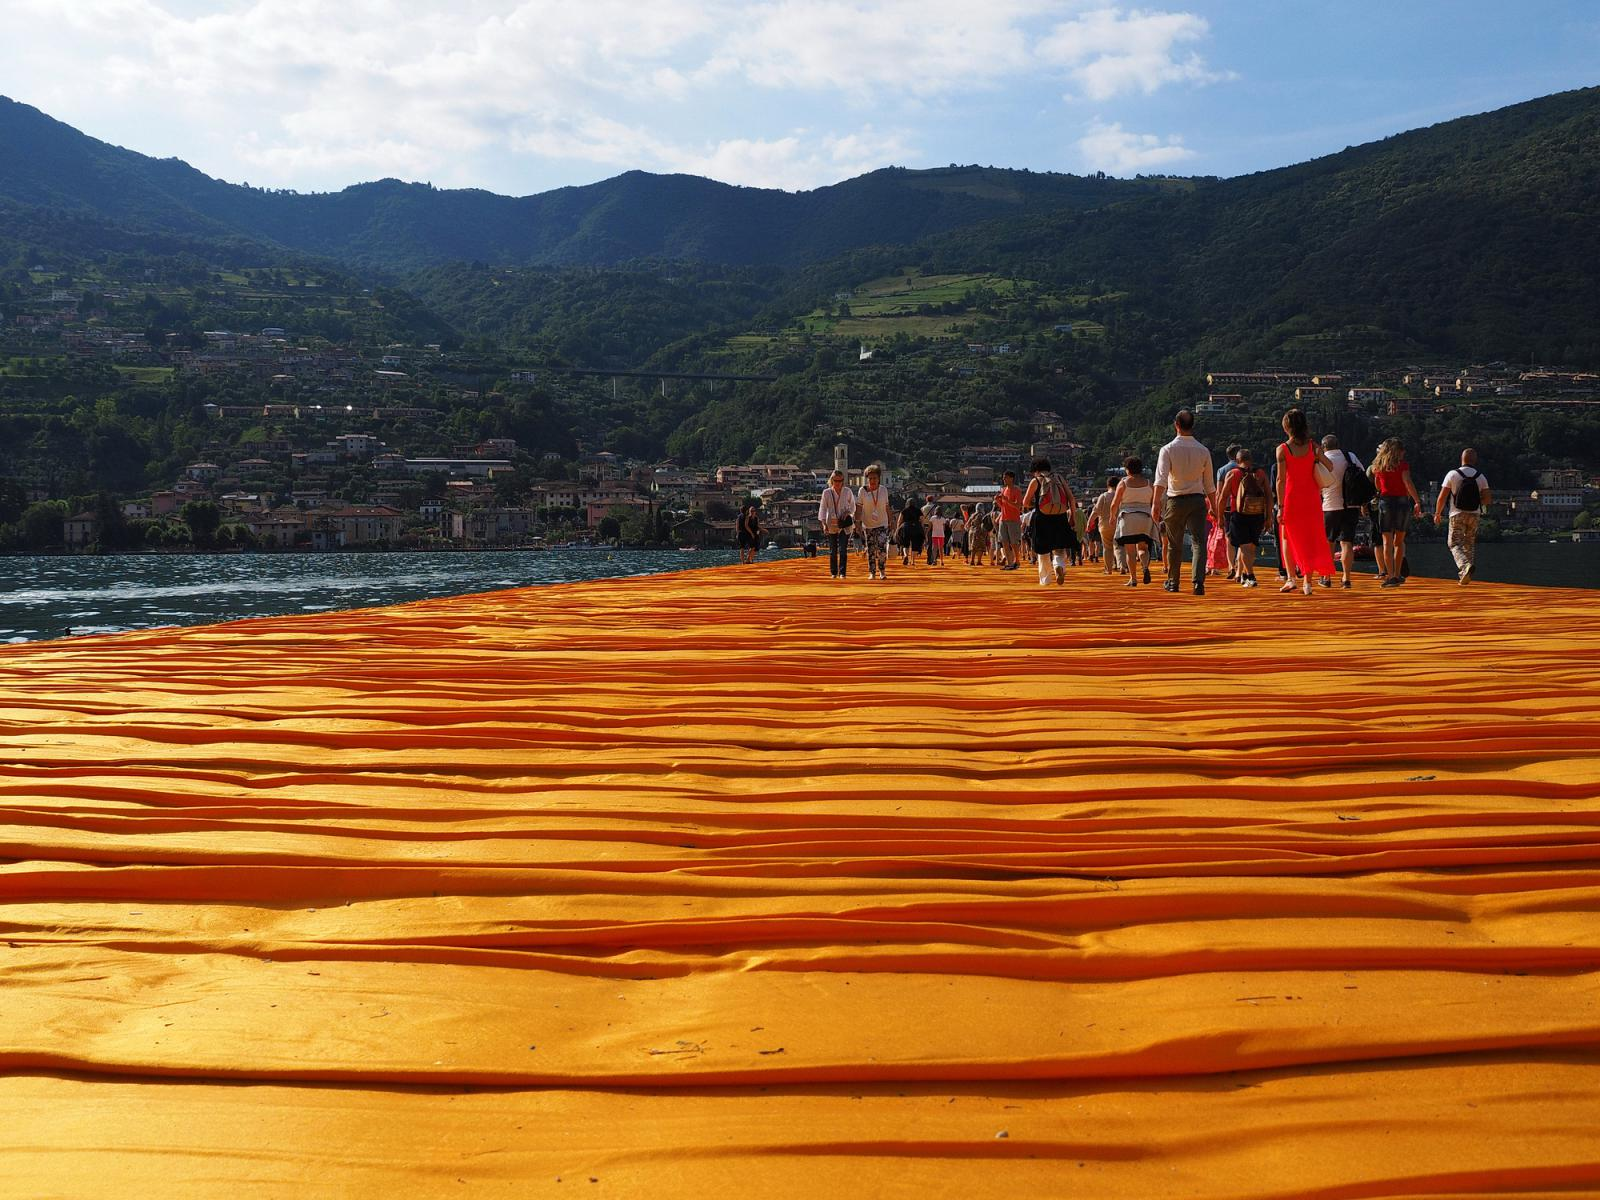 The Floating Piers I